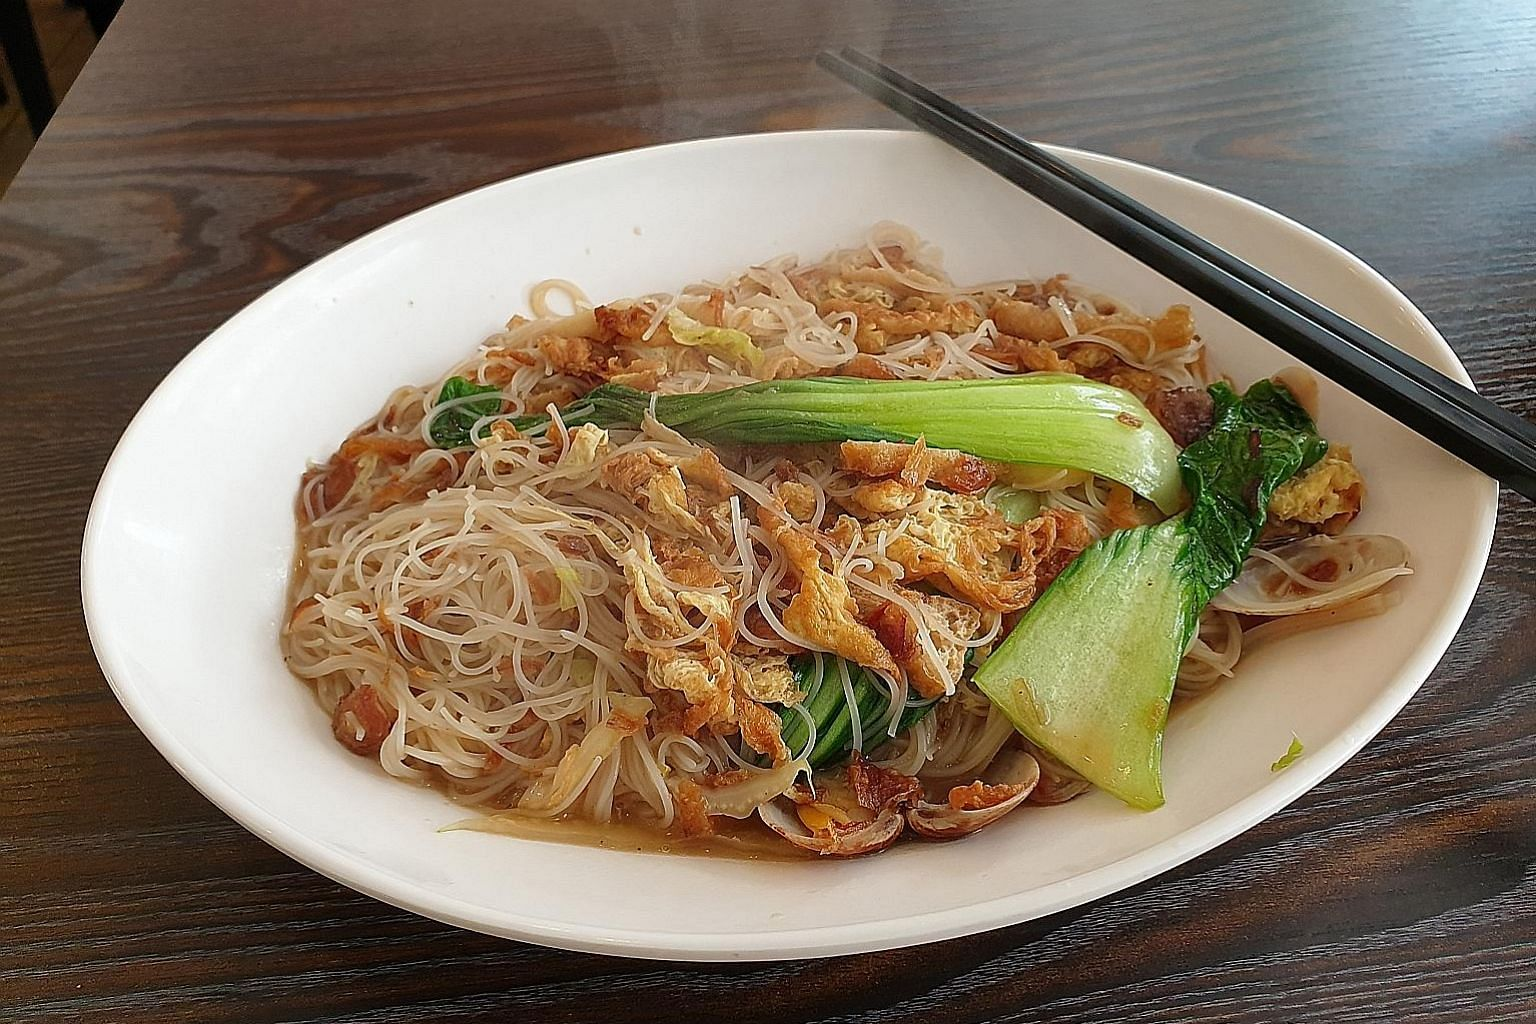 The vermicelli was bathed in a rich gravy and came with clams, fish cake, bok choy, finely sliced tau pok and wispy fried egg.